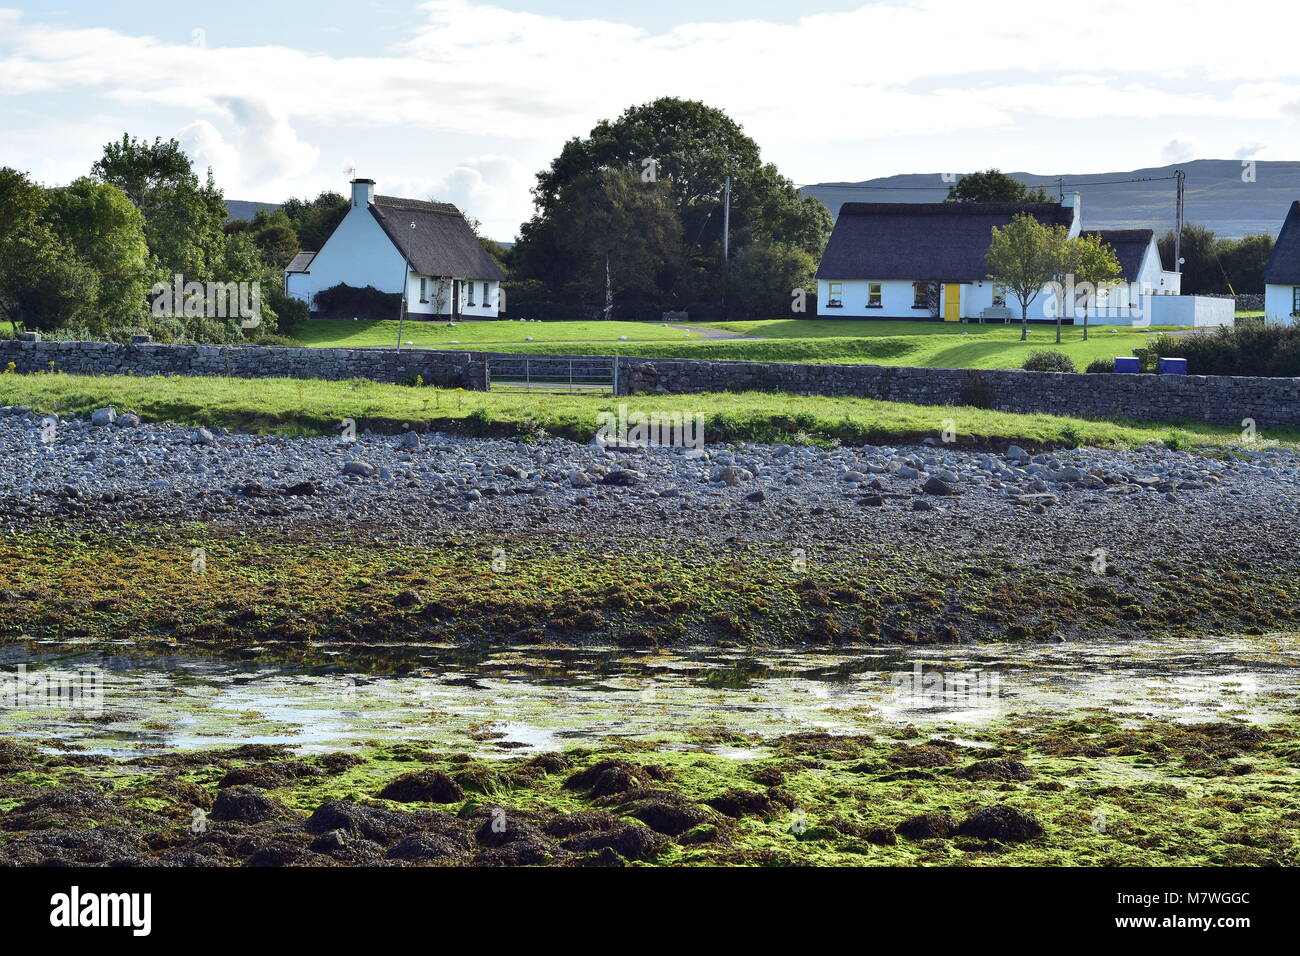 White country cottages with thatched roof in village of Ballyvaughan on west coast of Ireland. - Stock Image